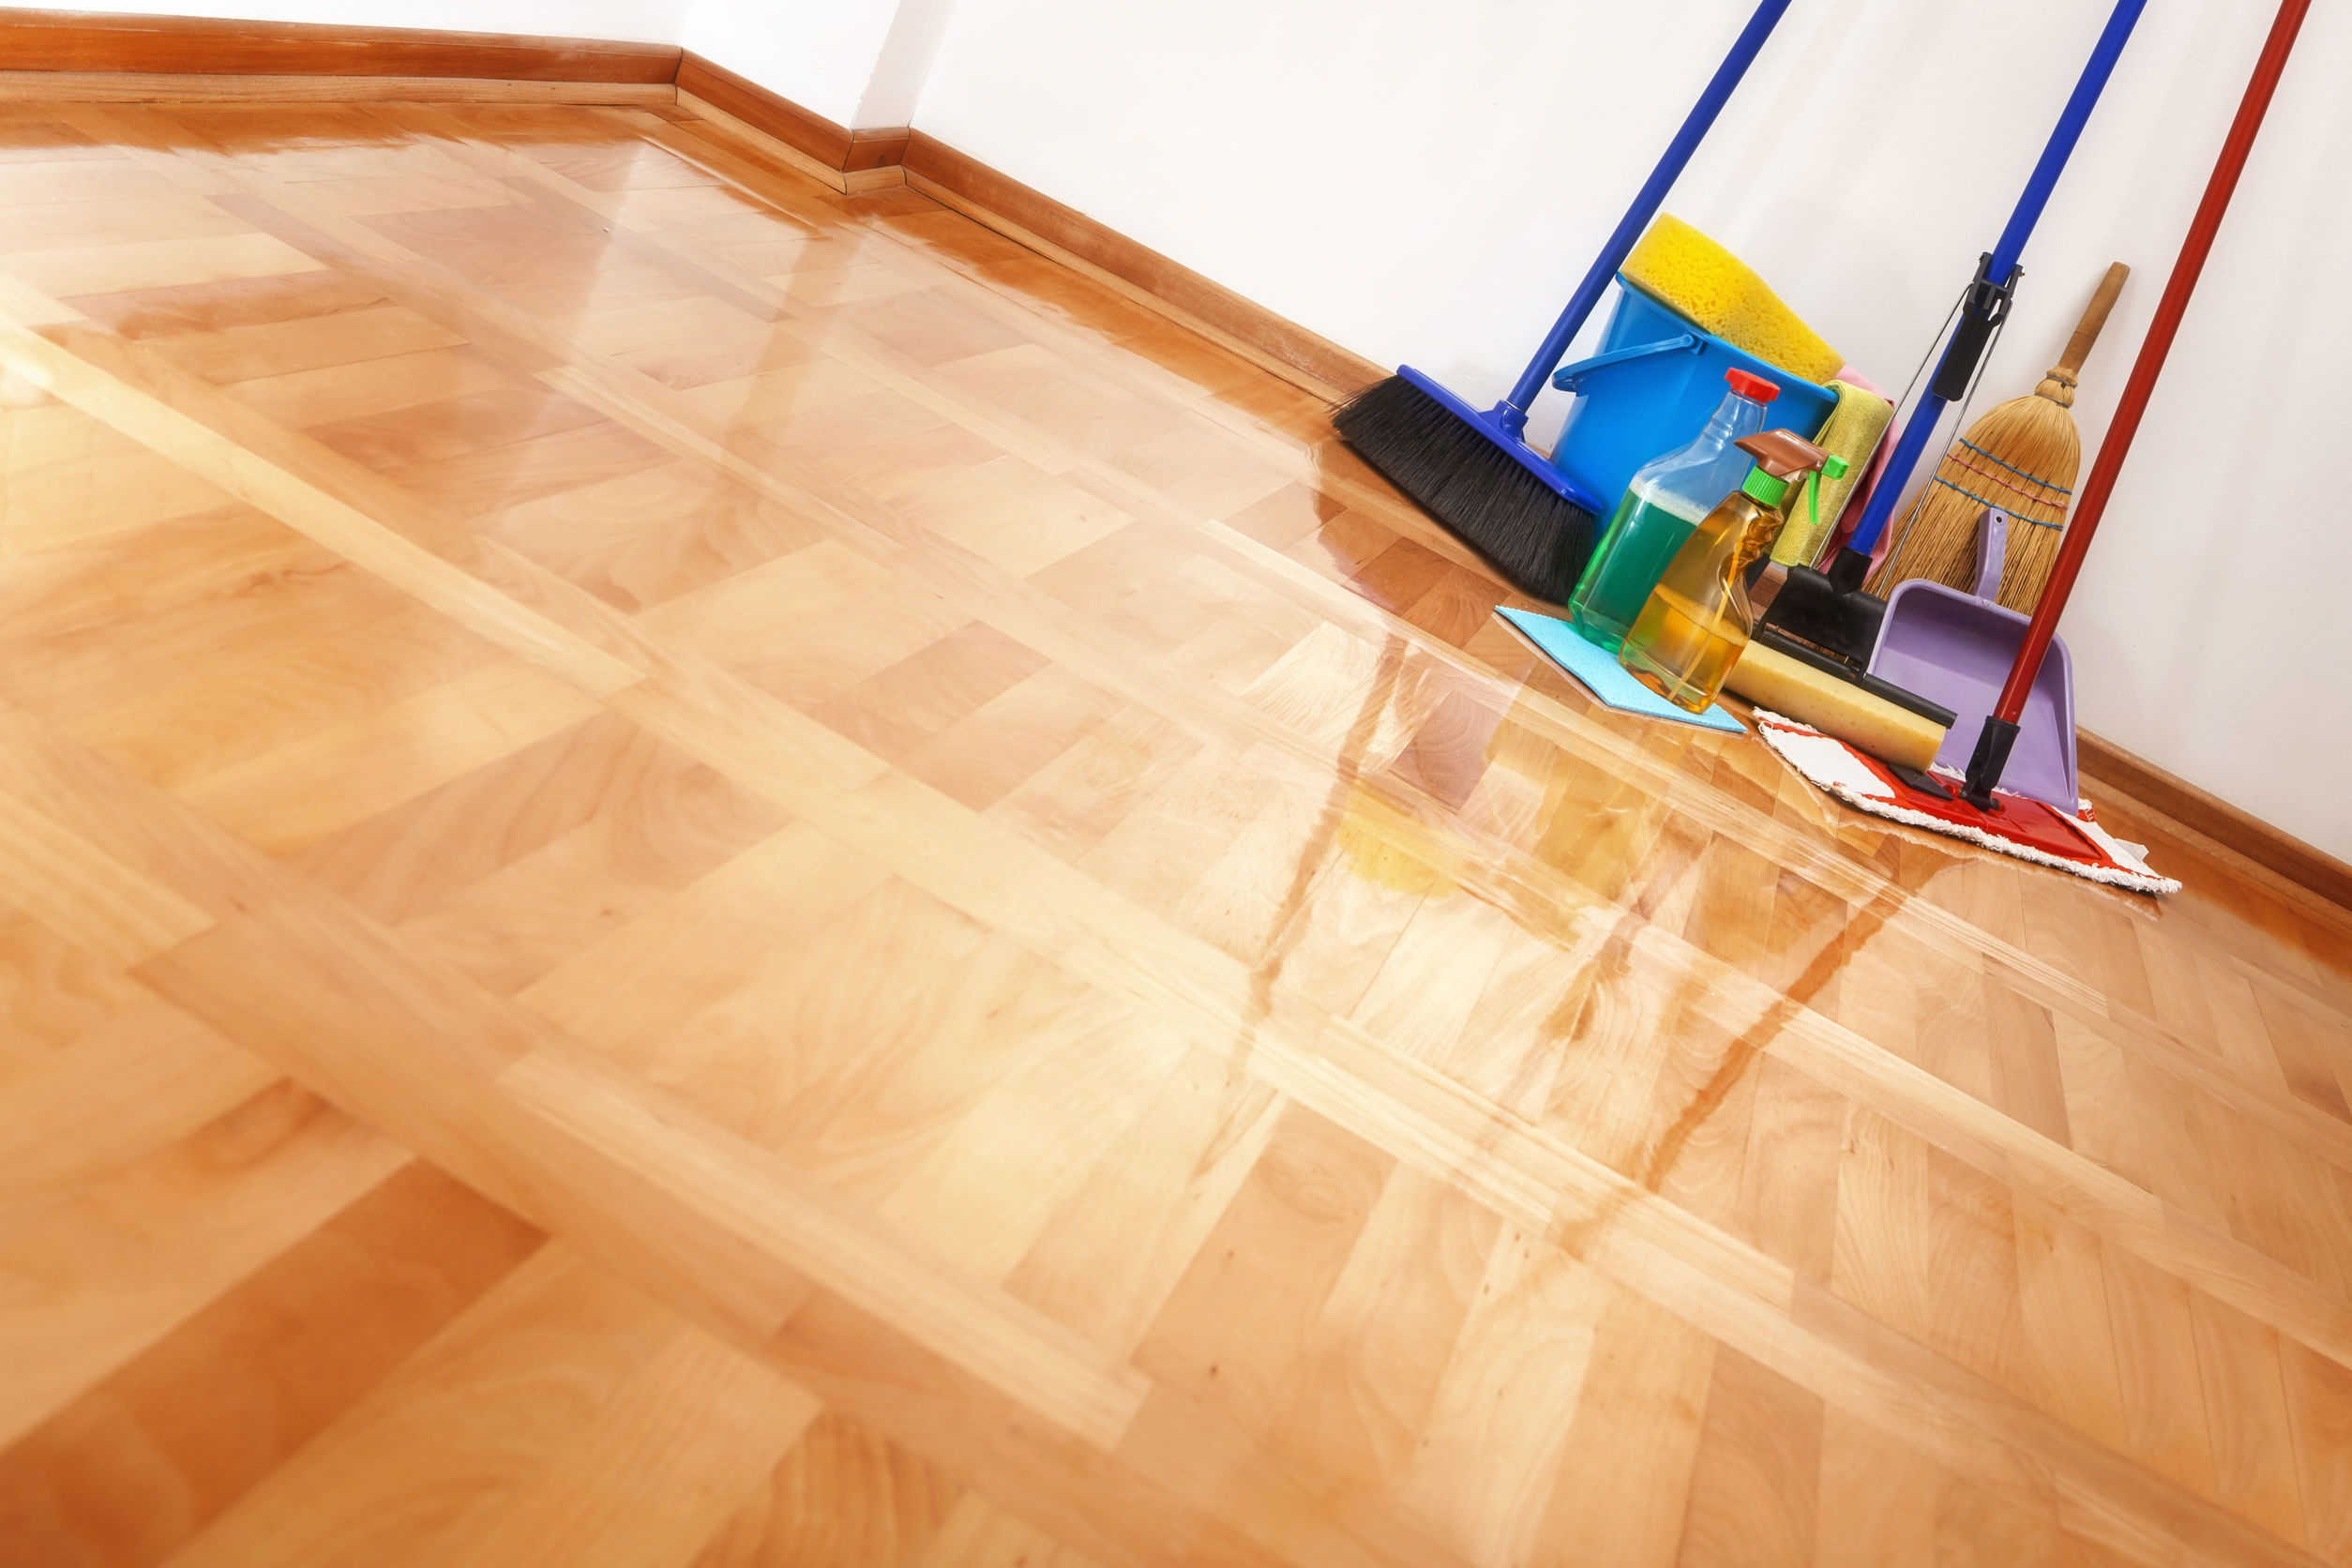 Shine Wood Floors Without Chemicals